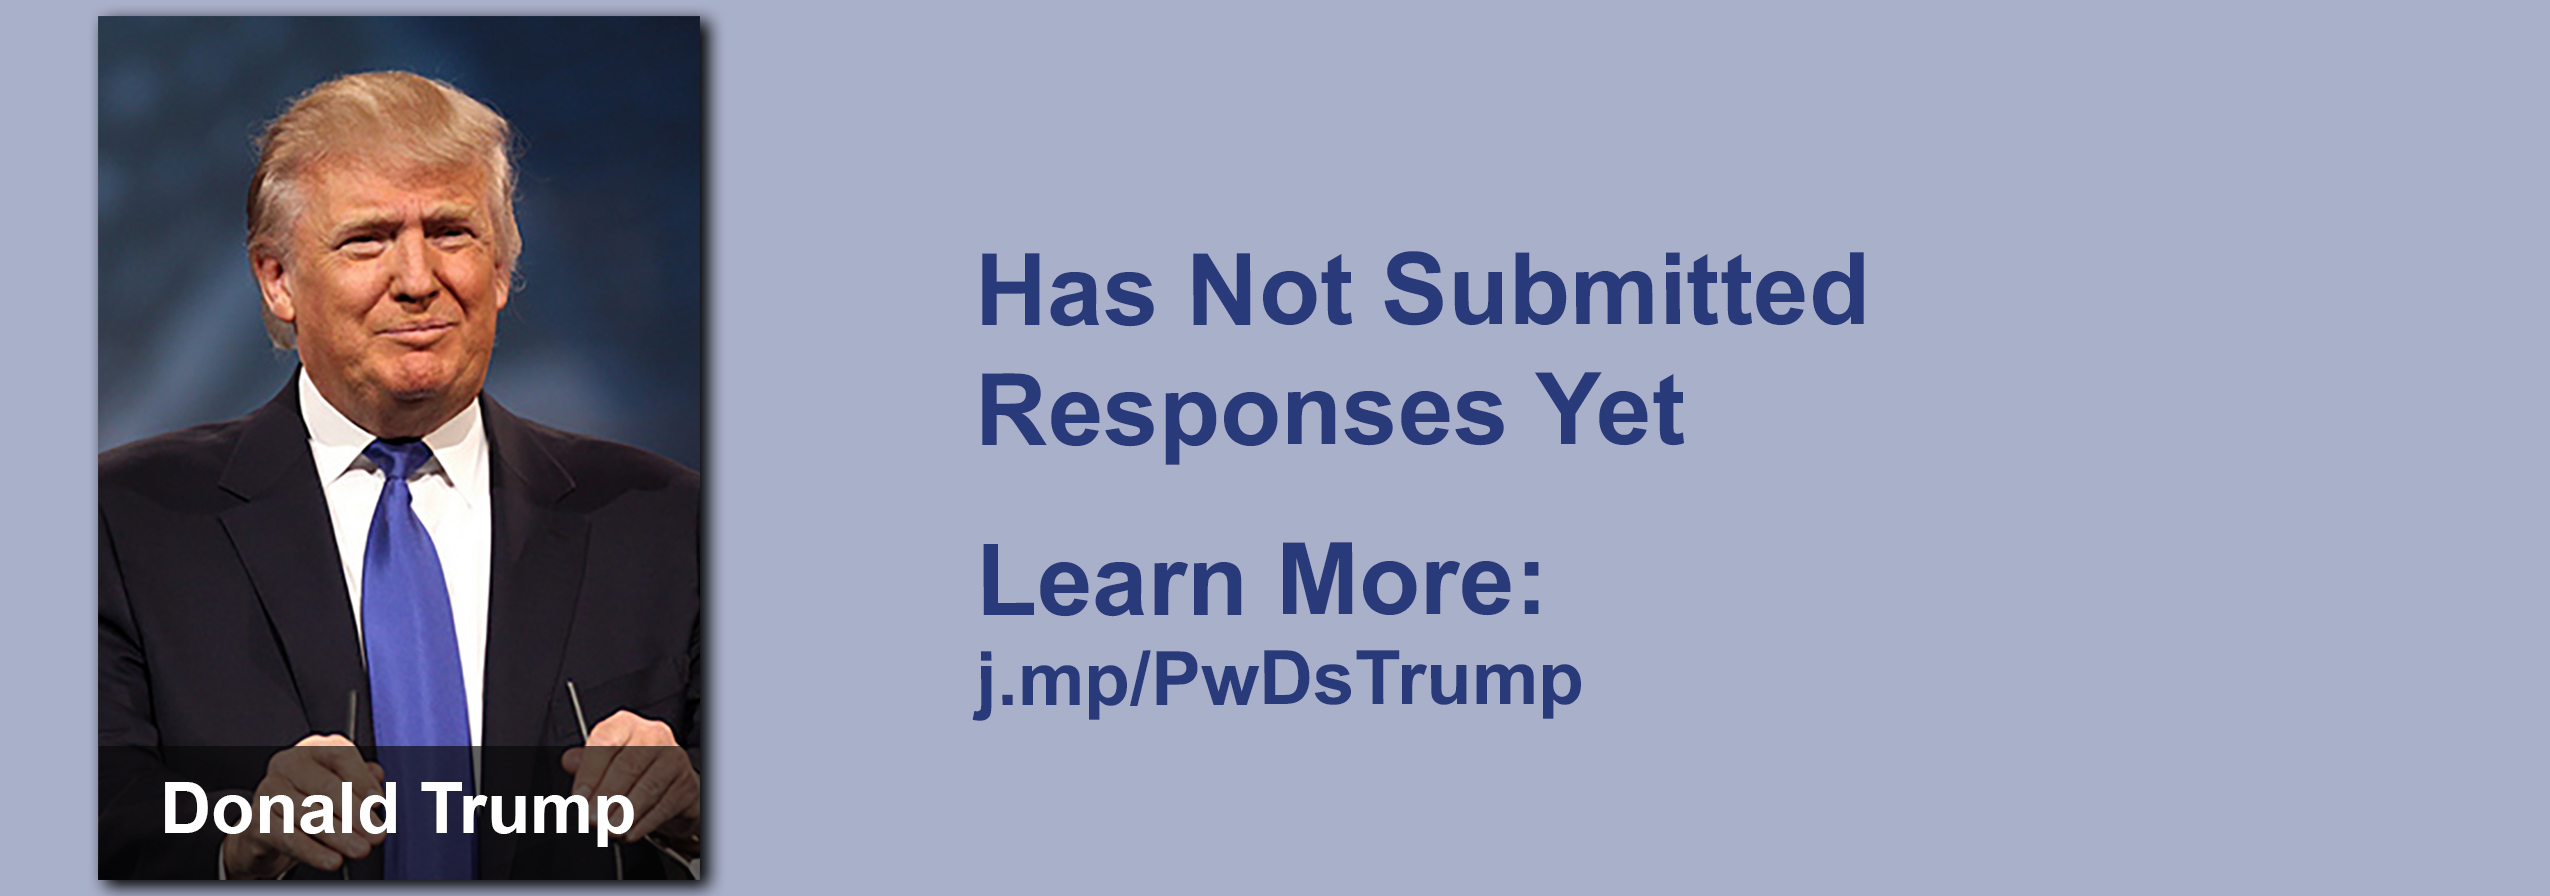 Donald Trump has yet to submit responses to the questionnaire but click the image to read our coverage of his disability conversations.